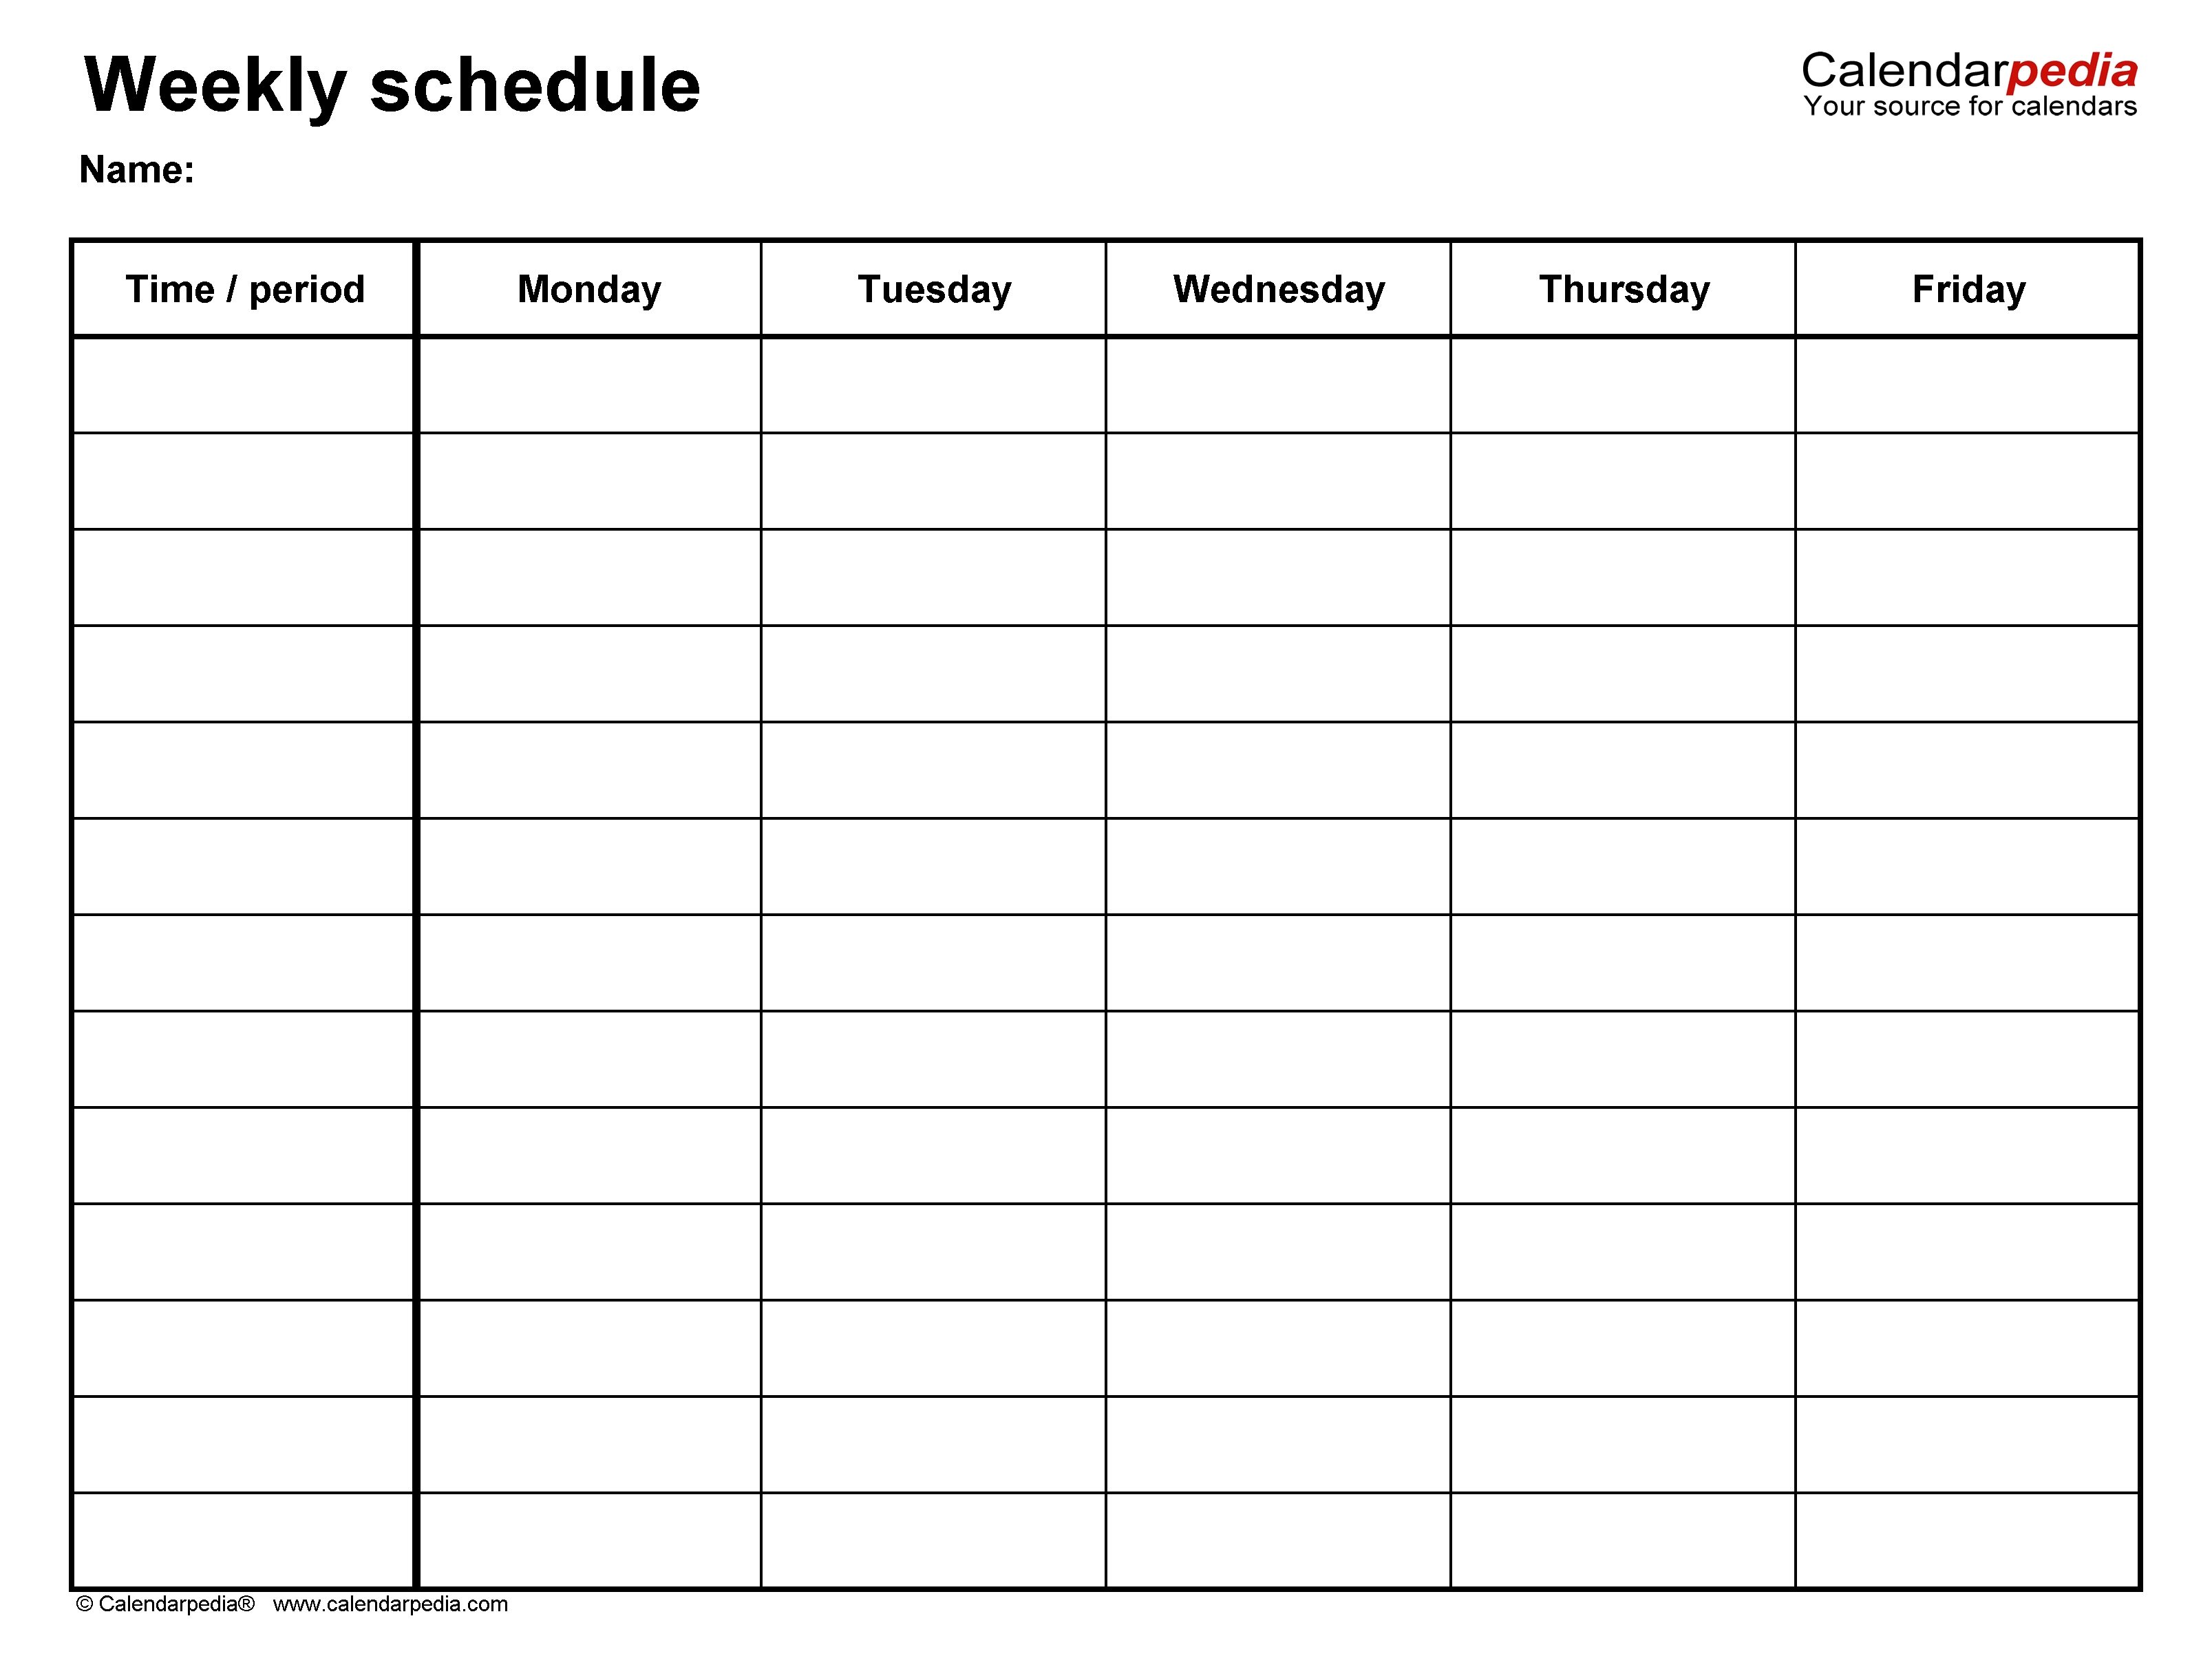 Free Weekly Schedule Templates For Pdf - 18 Templates  7 Day Weekly Chart Printable